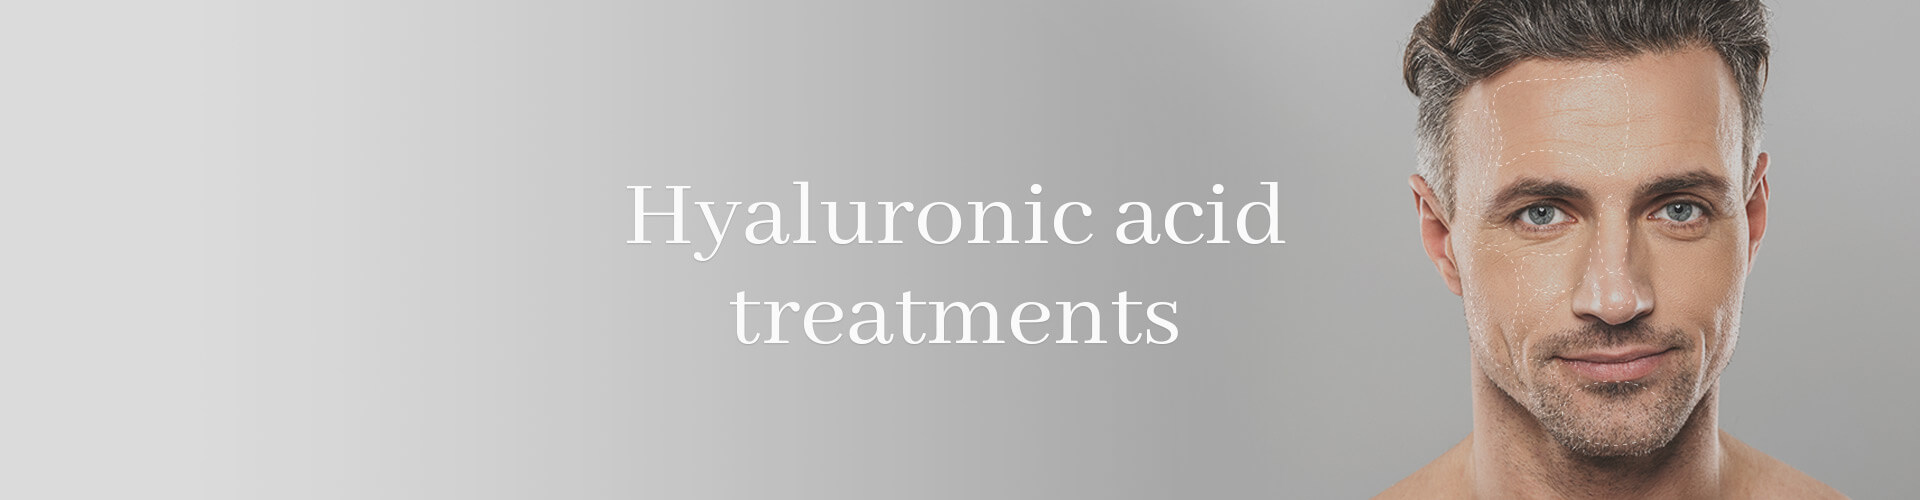 hyaluronic-acid-treatments-man-duesseldorf-koebe-klinik-d.jpg